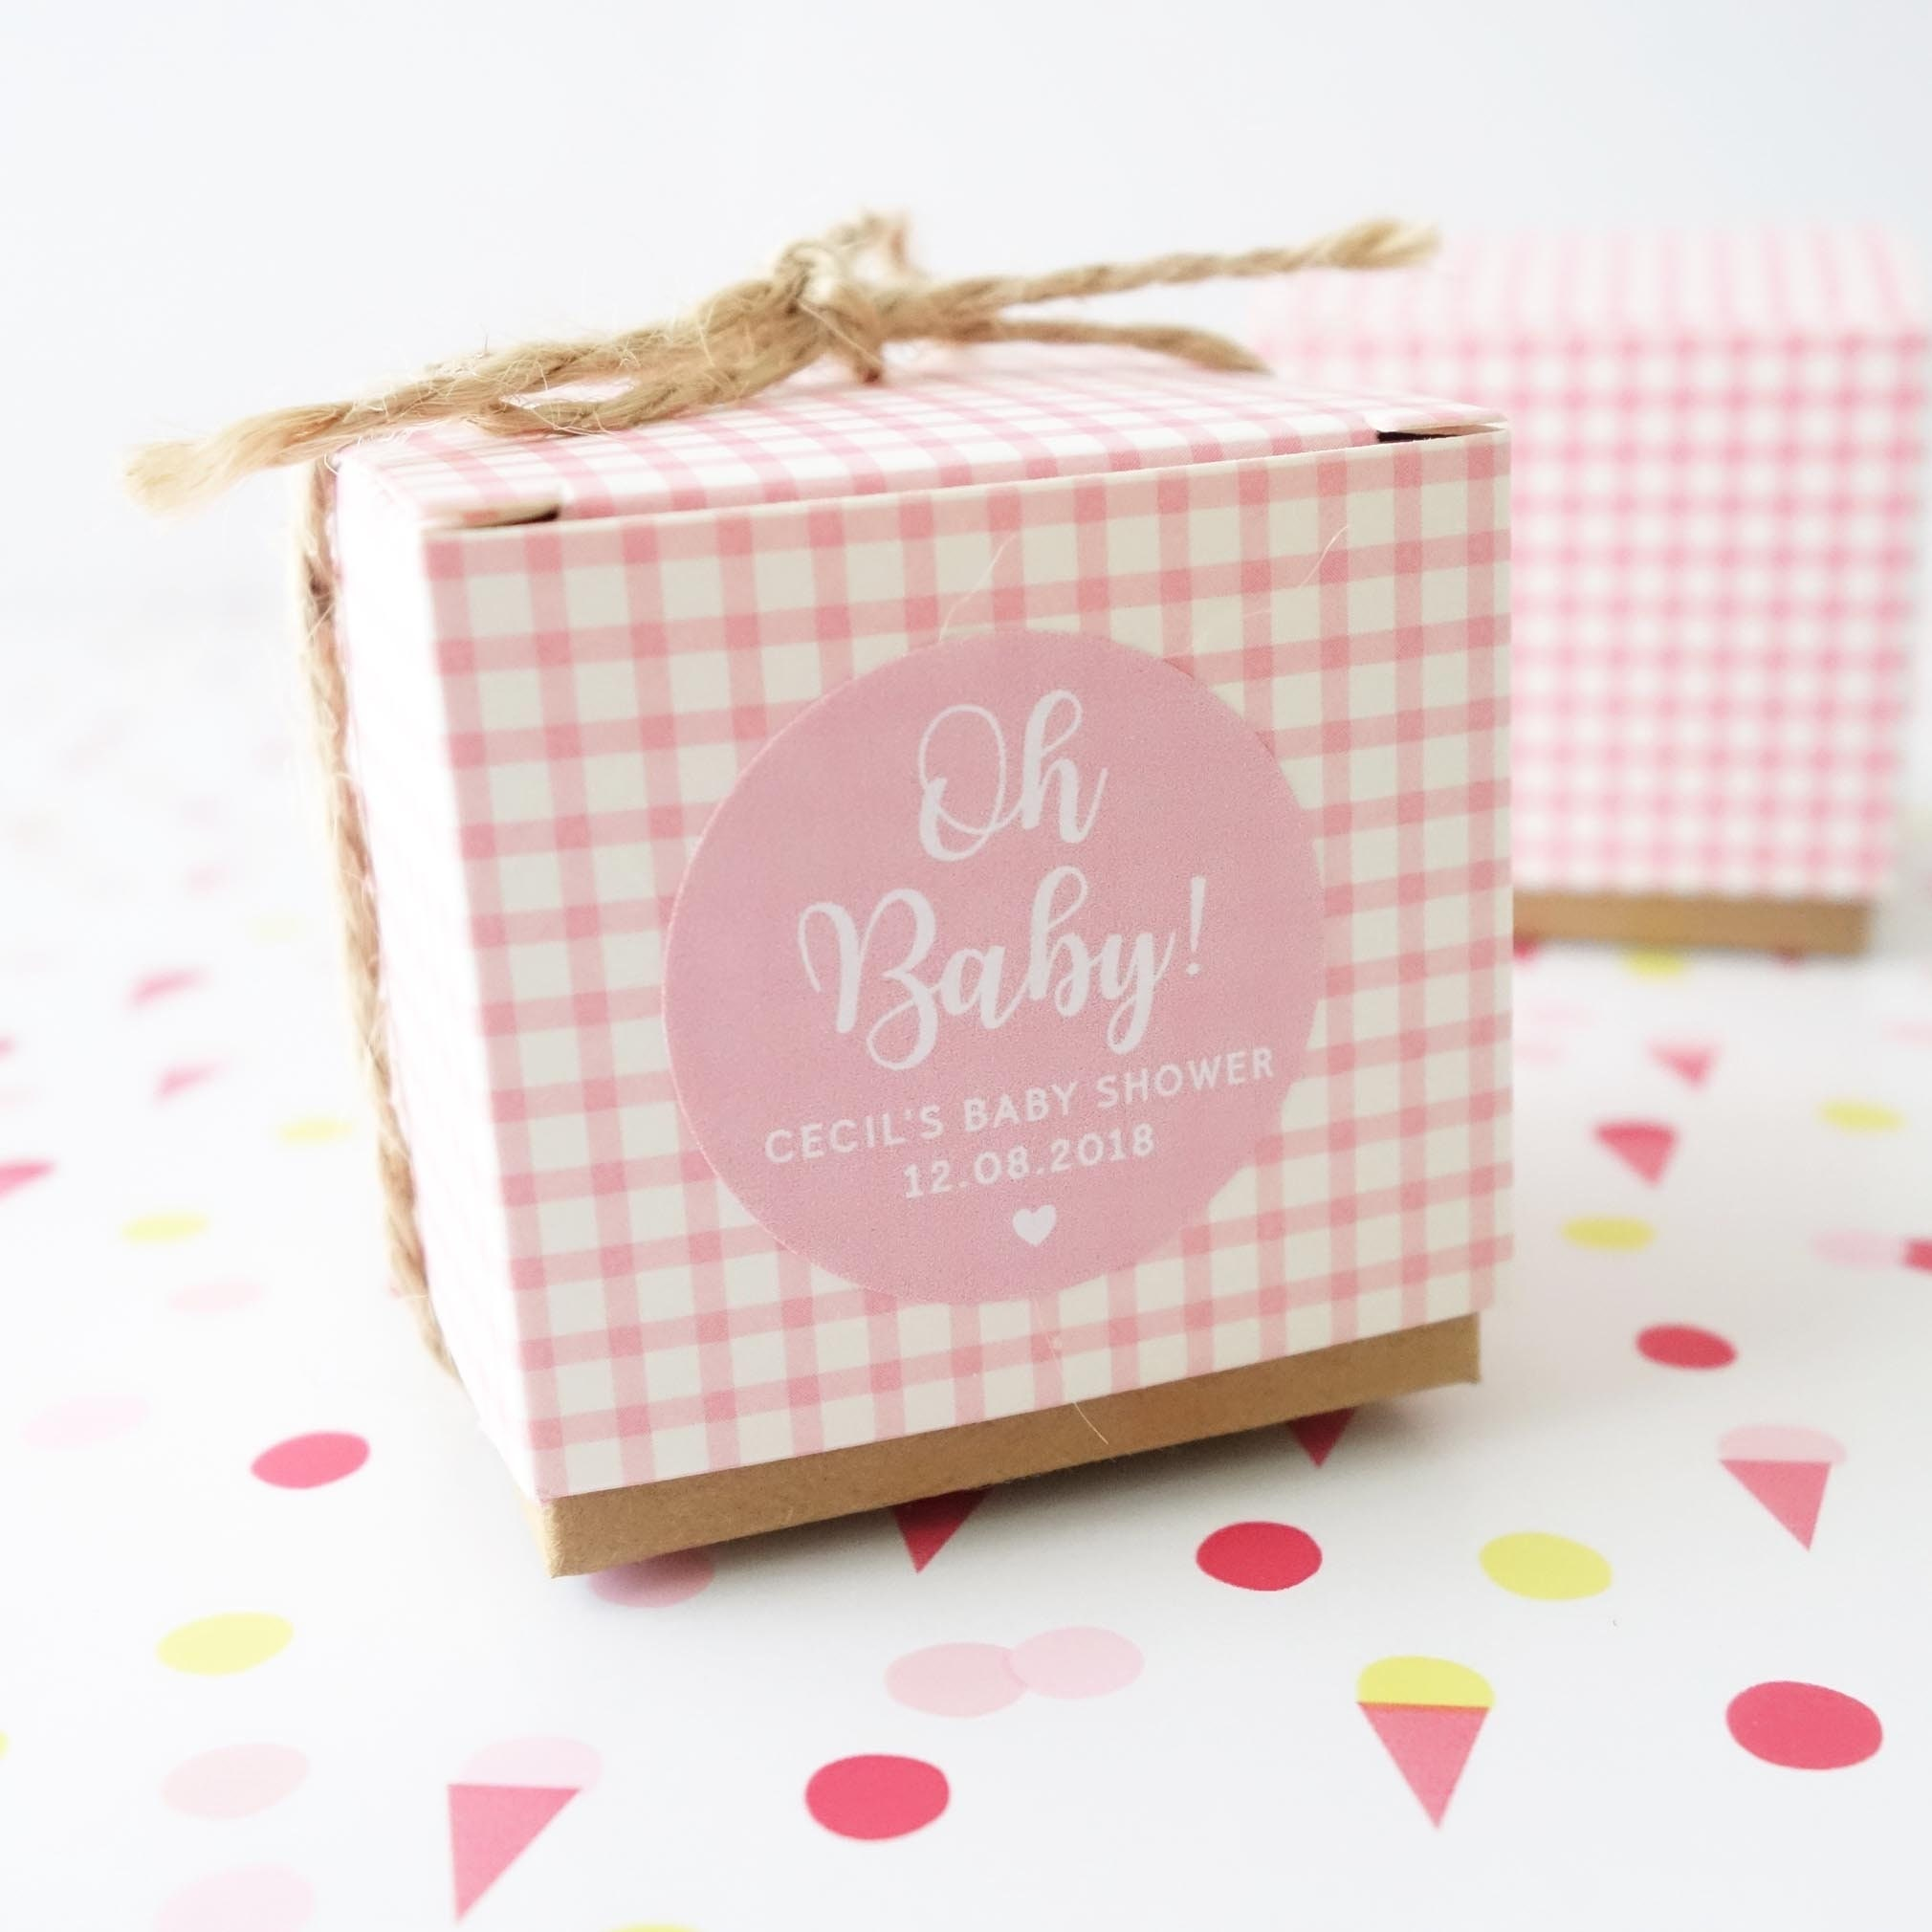 Oh Baby Personalised Baby Shower Favour Boxes Pink Gift Box